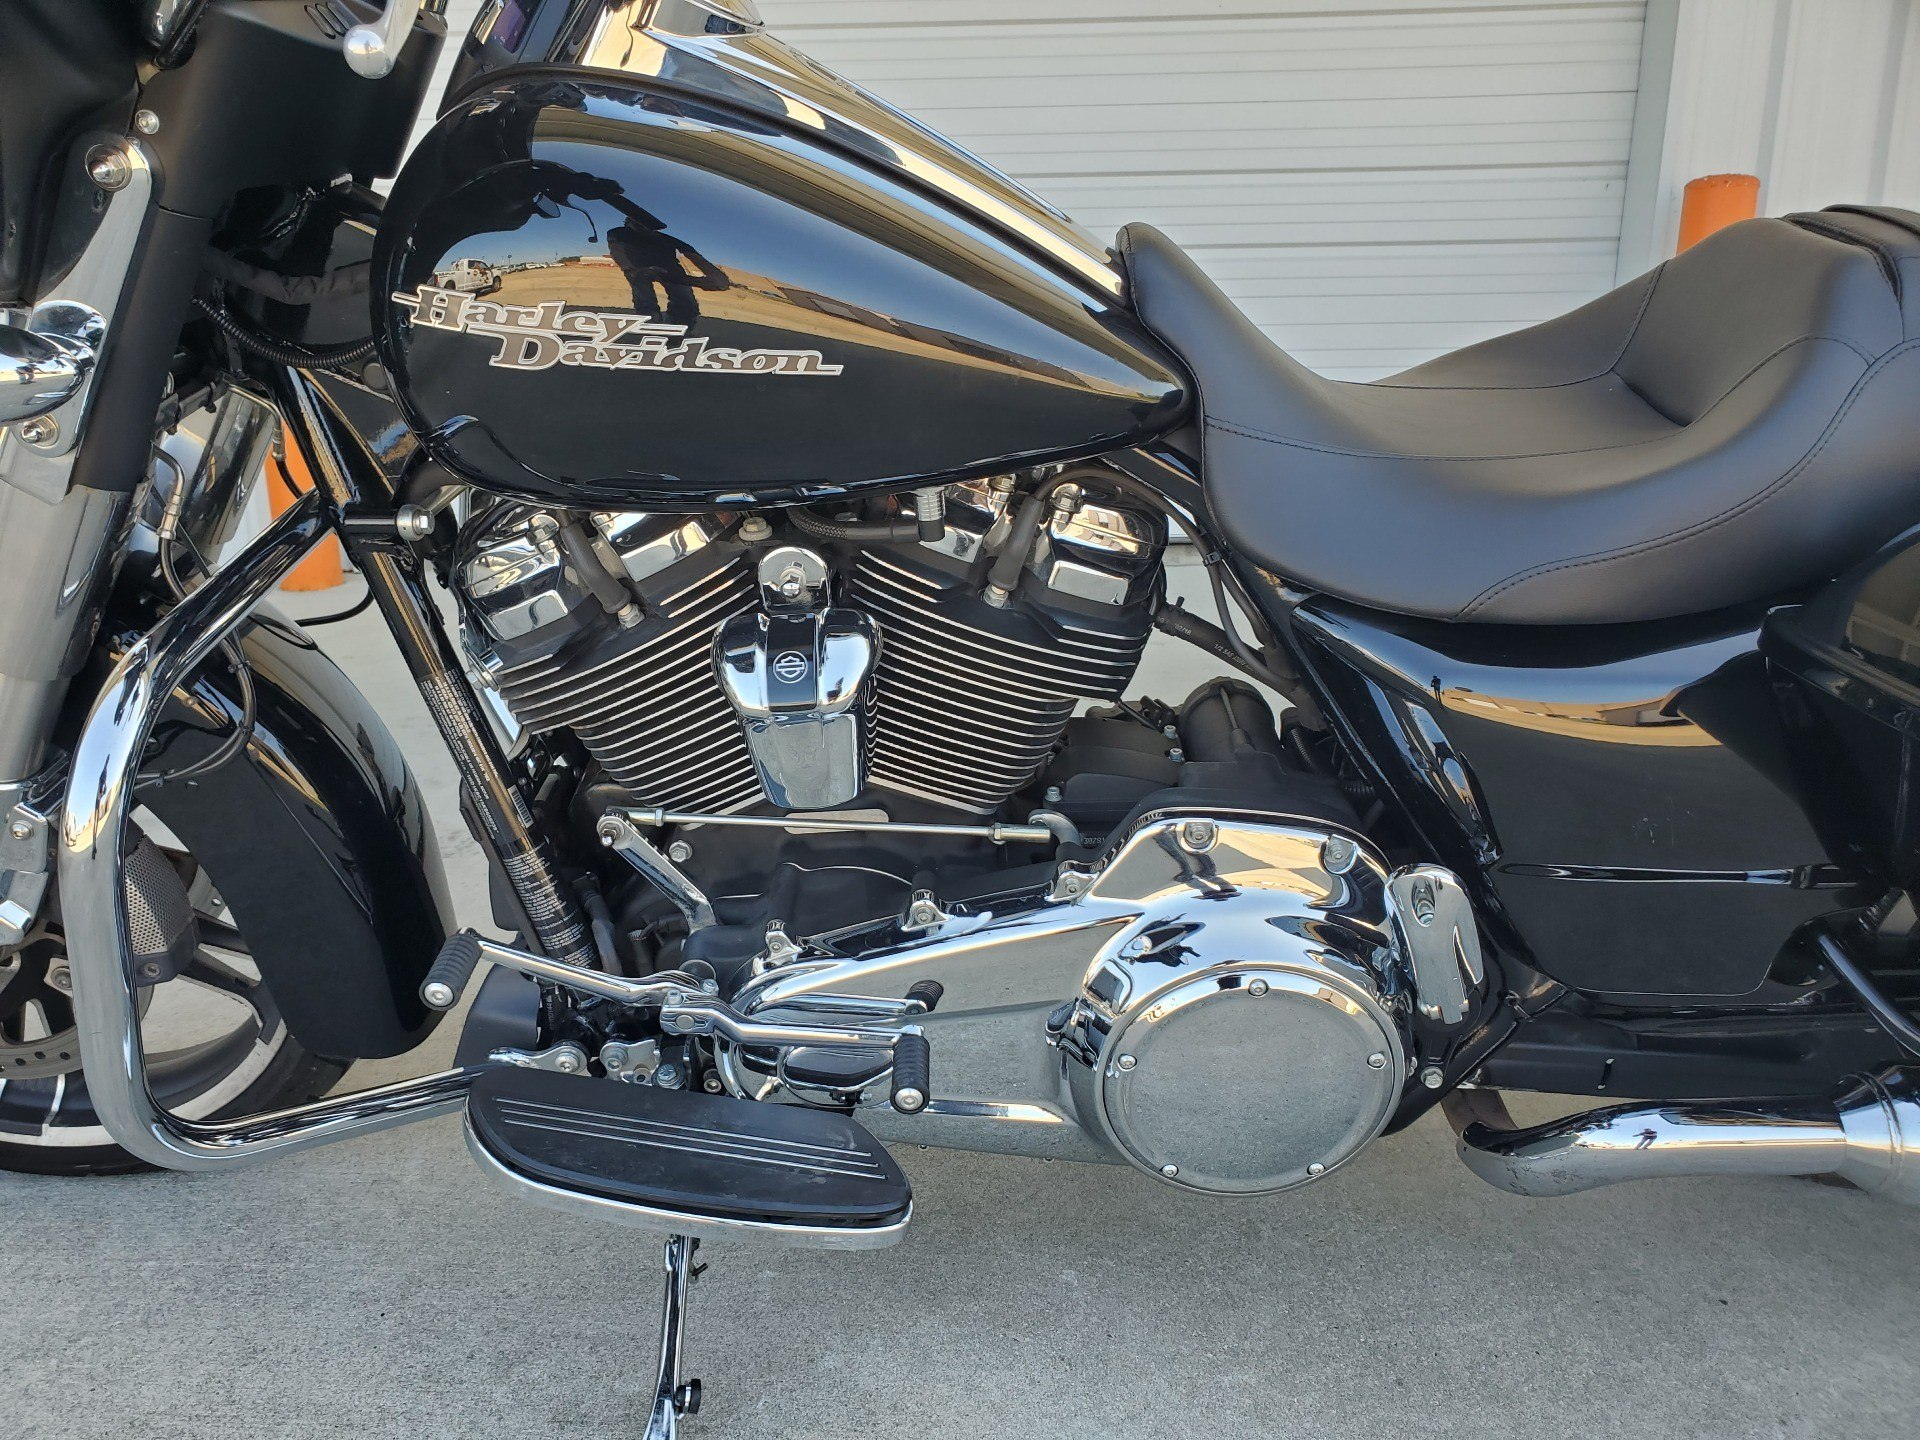 used street glide for sale near me - Photo 7